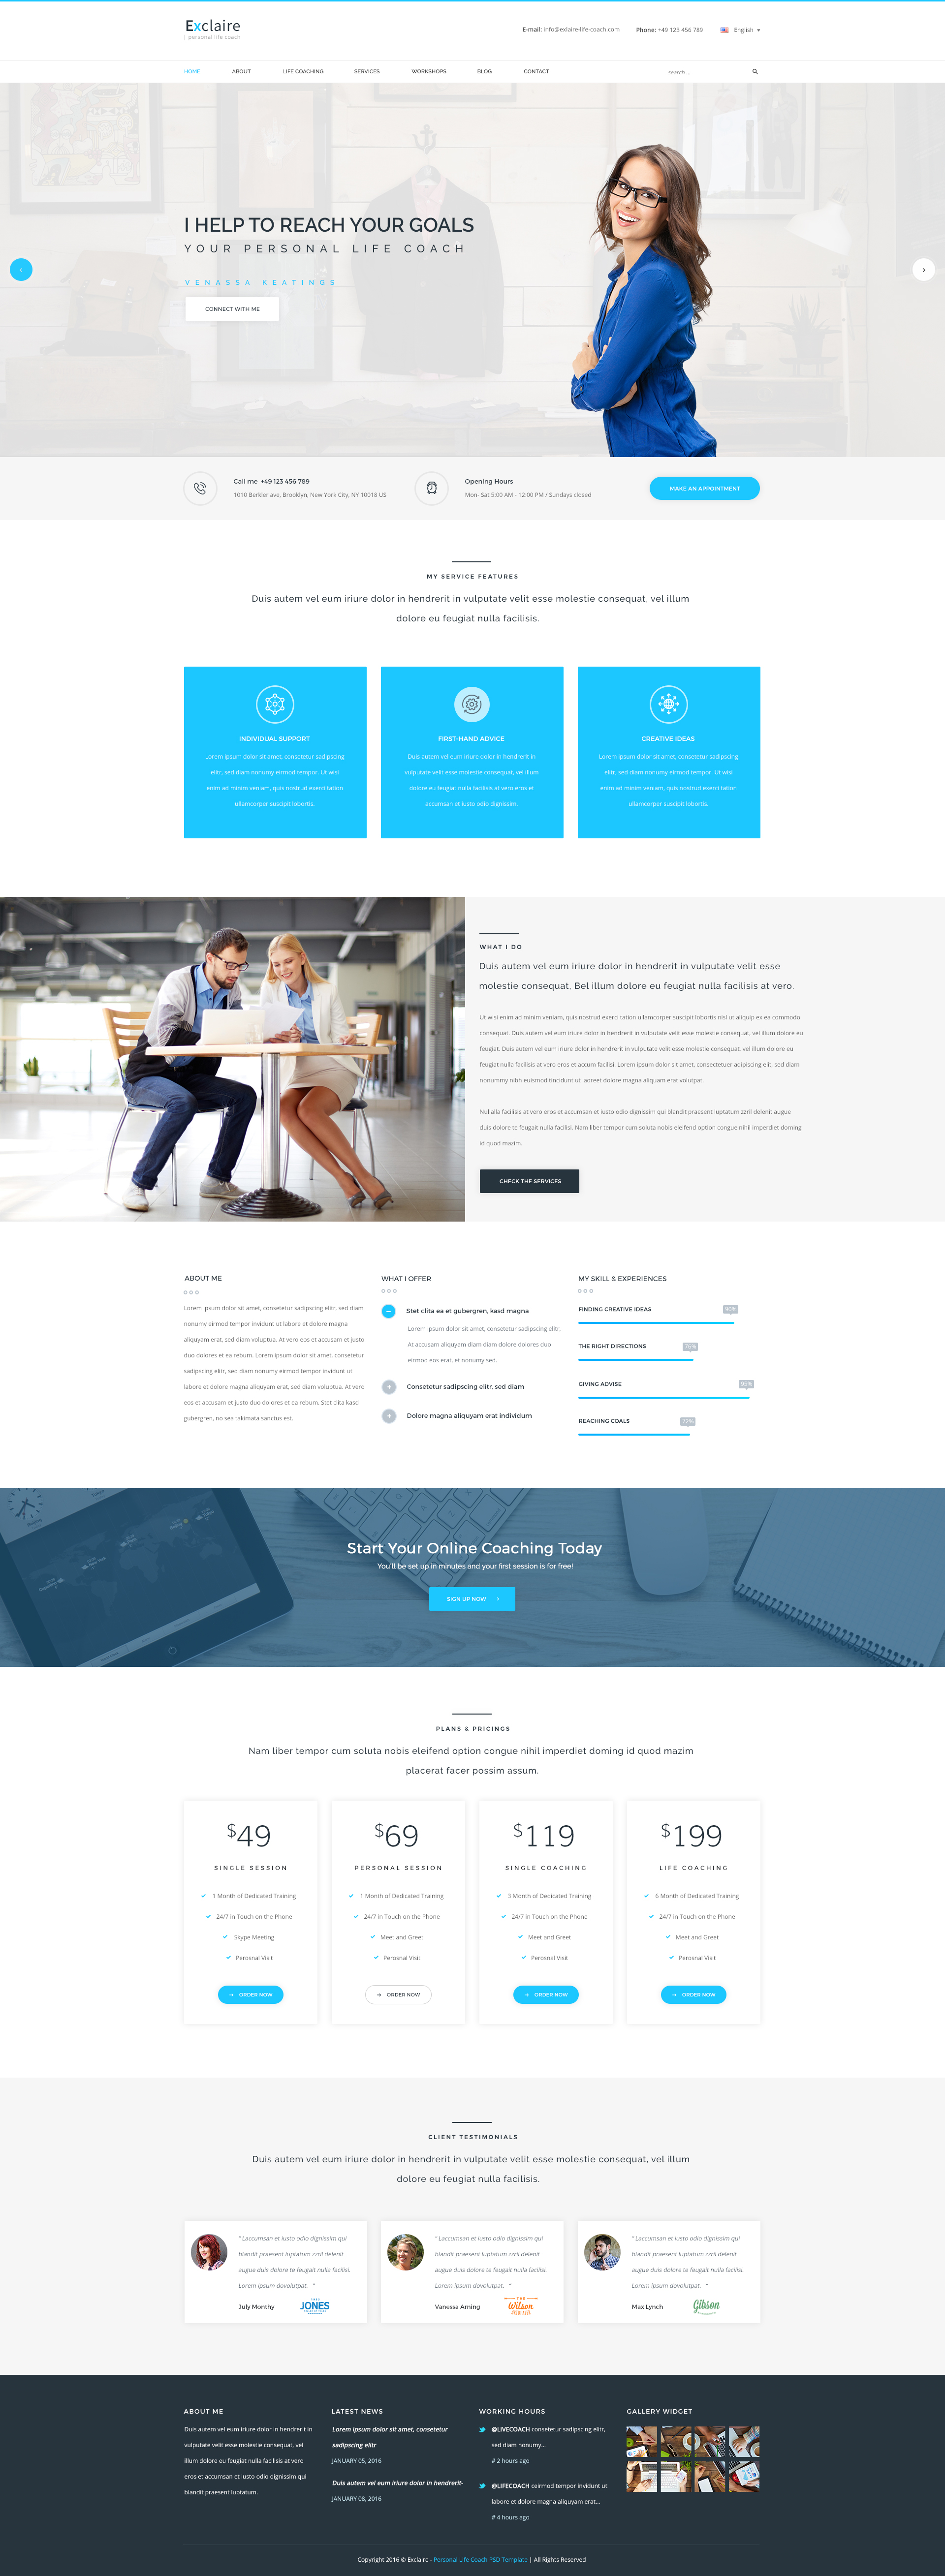 Exclaire Personal Life Coach Psd Template